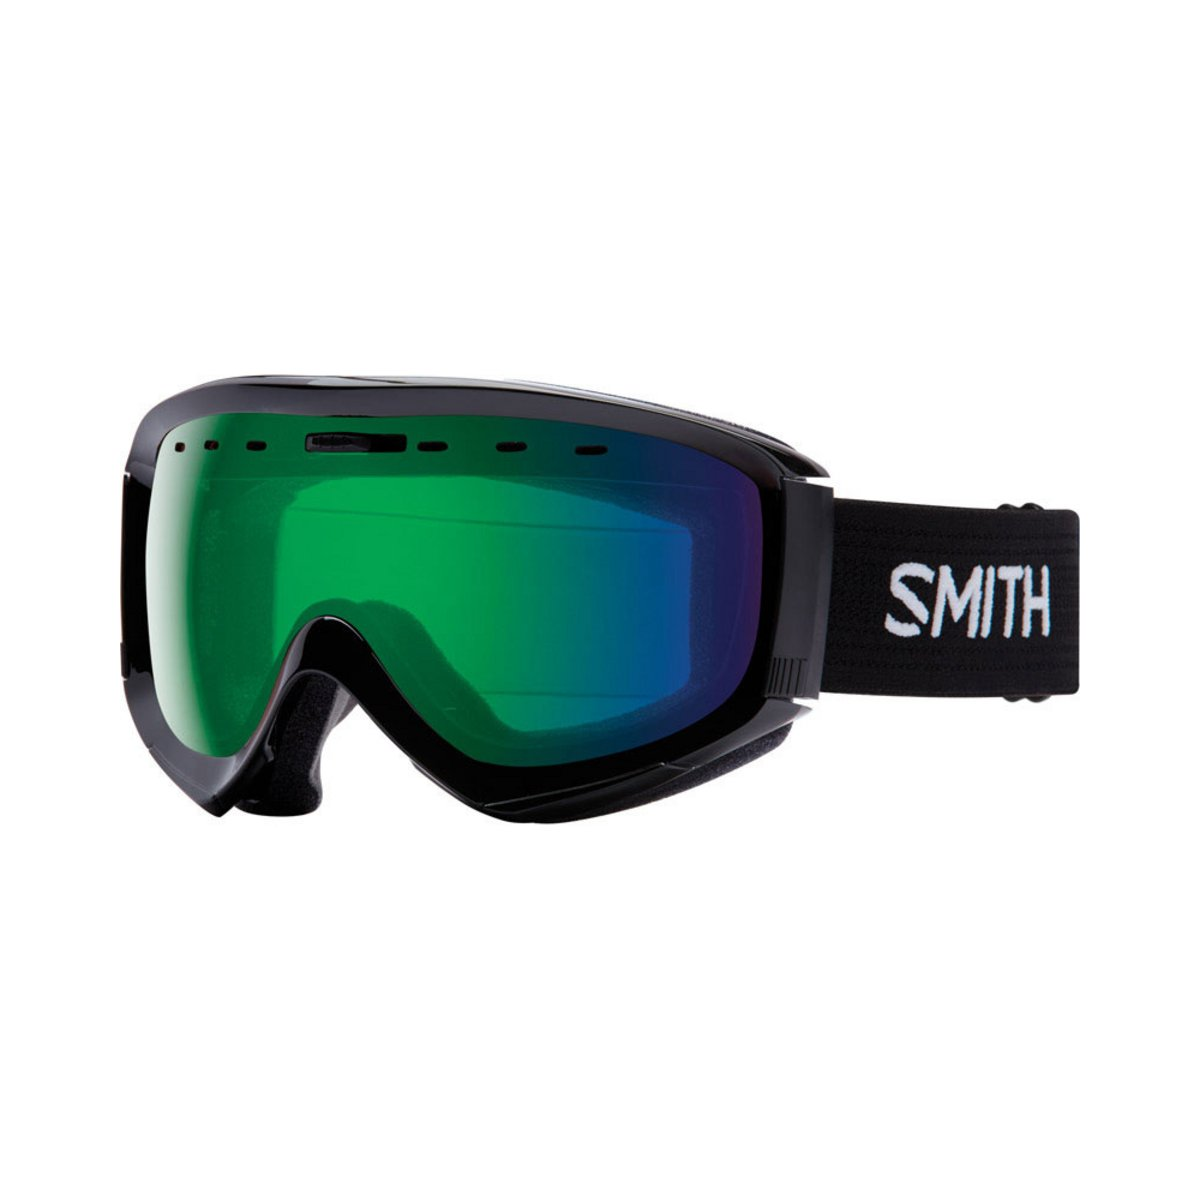 Smith Prophecy OTG Black / Everyday Green Mirror Goggles 2019 / 2020 0